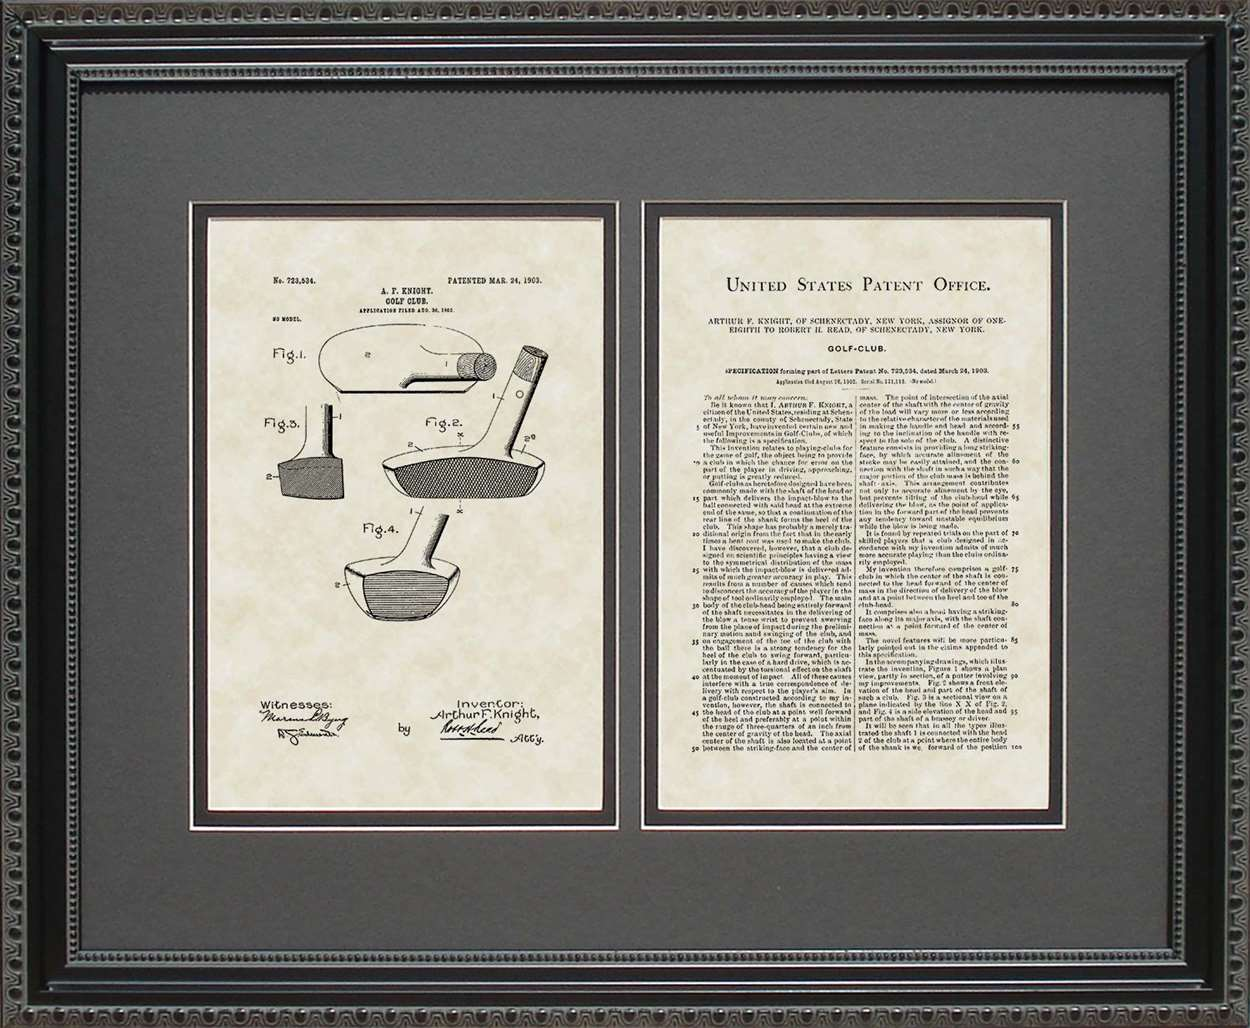 Golf Putter Patent, Art & Copy, Knight, 1903, 16x20